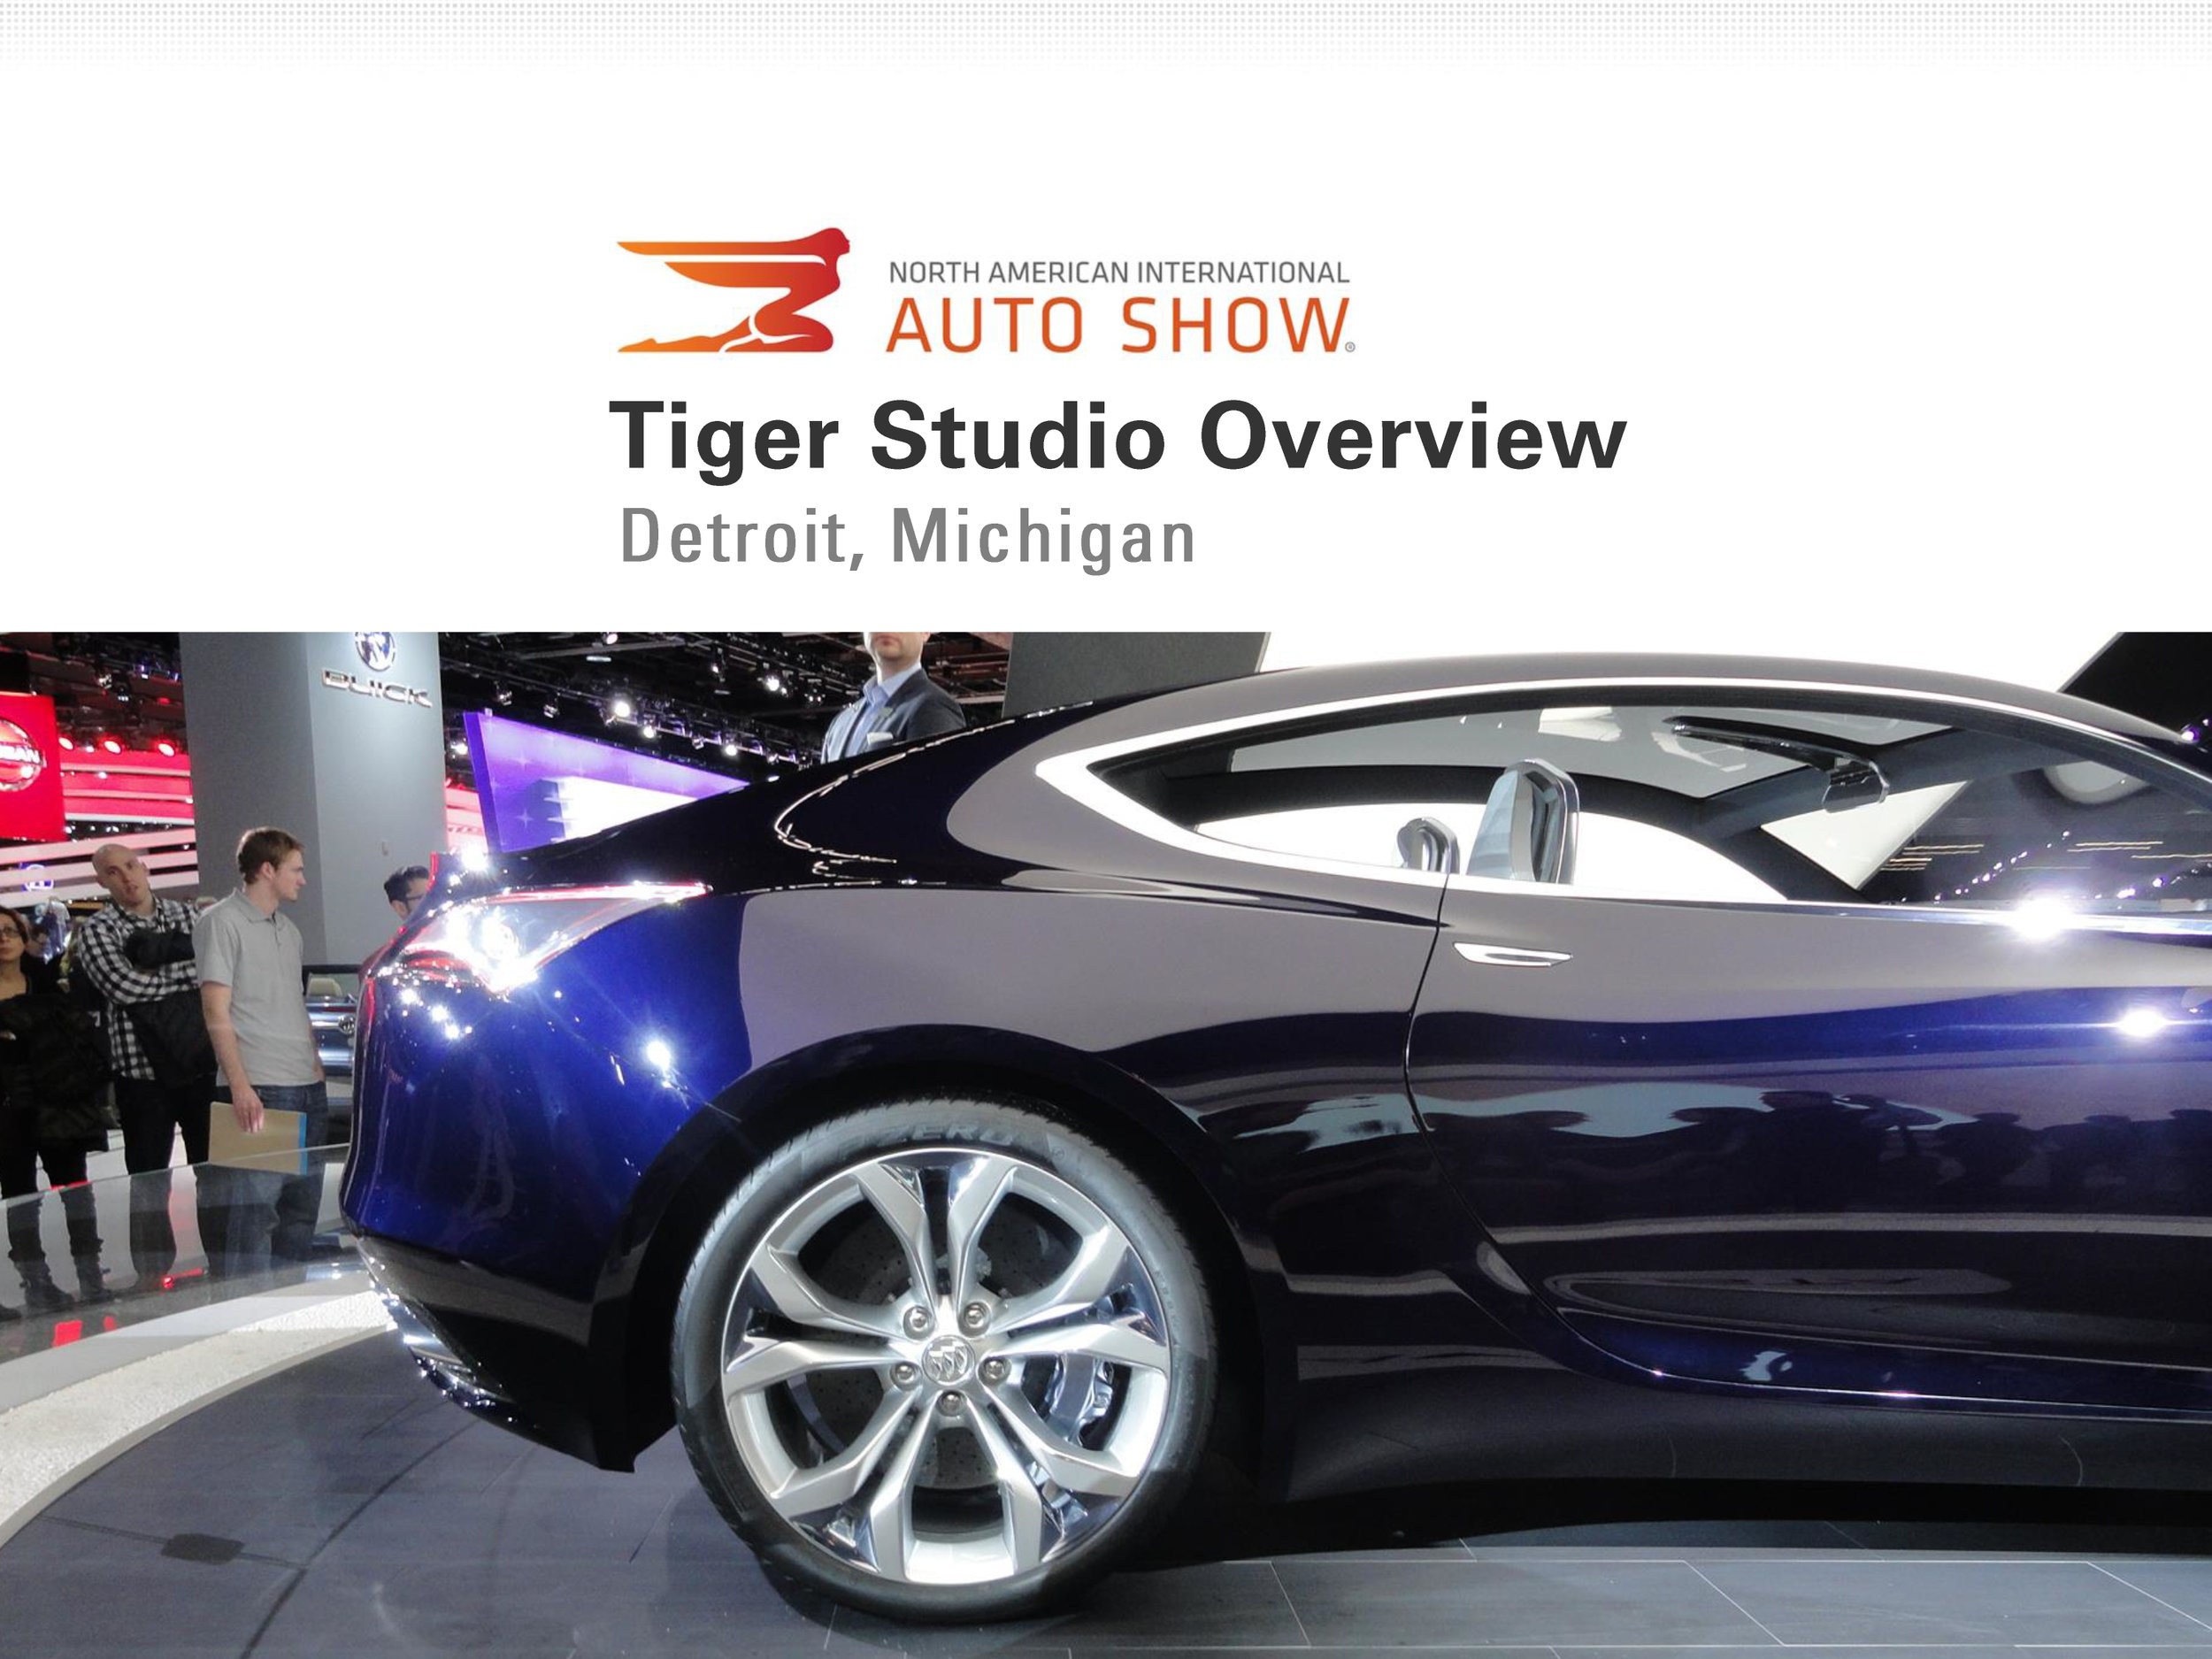 North Amercian Auto Show, 2016 Tiger Studio Overview (dragged).jpg